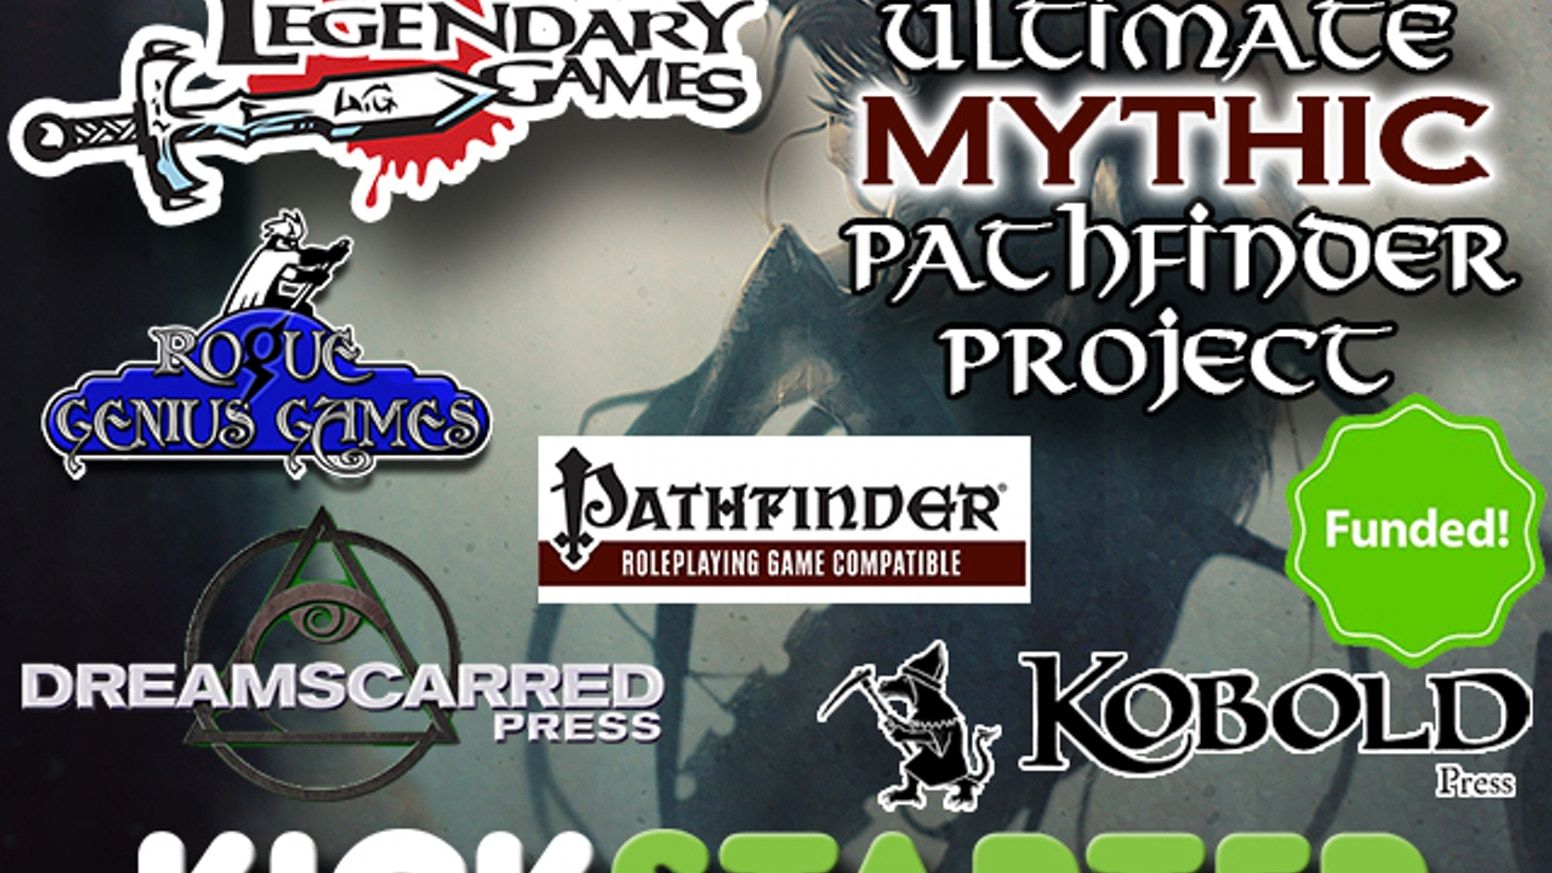 A massive expansion to the Pathfinder RPG Mythic rules in three print books, featuring spells, feats, monsters, mythic paths, and more!